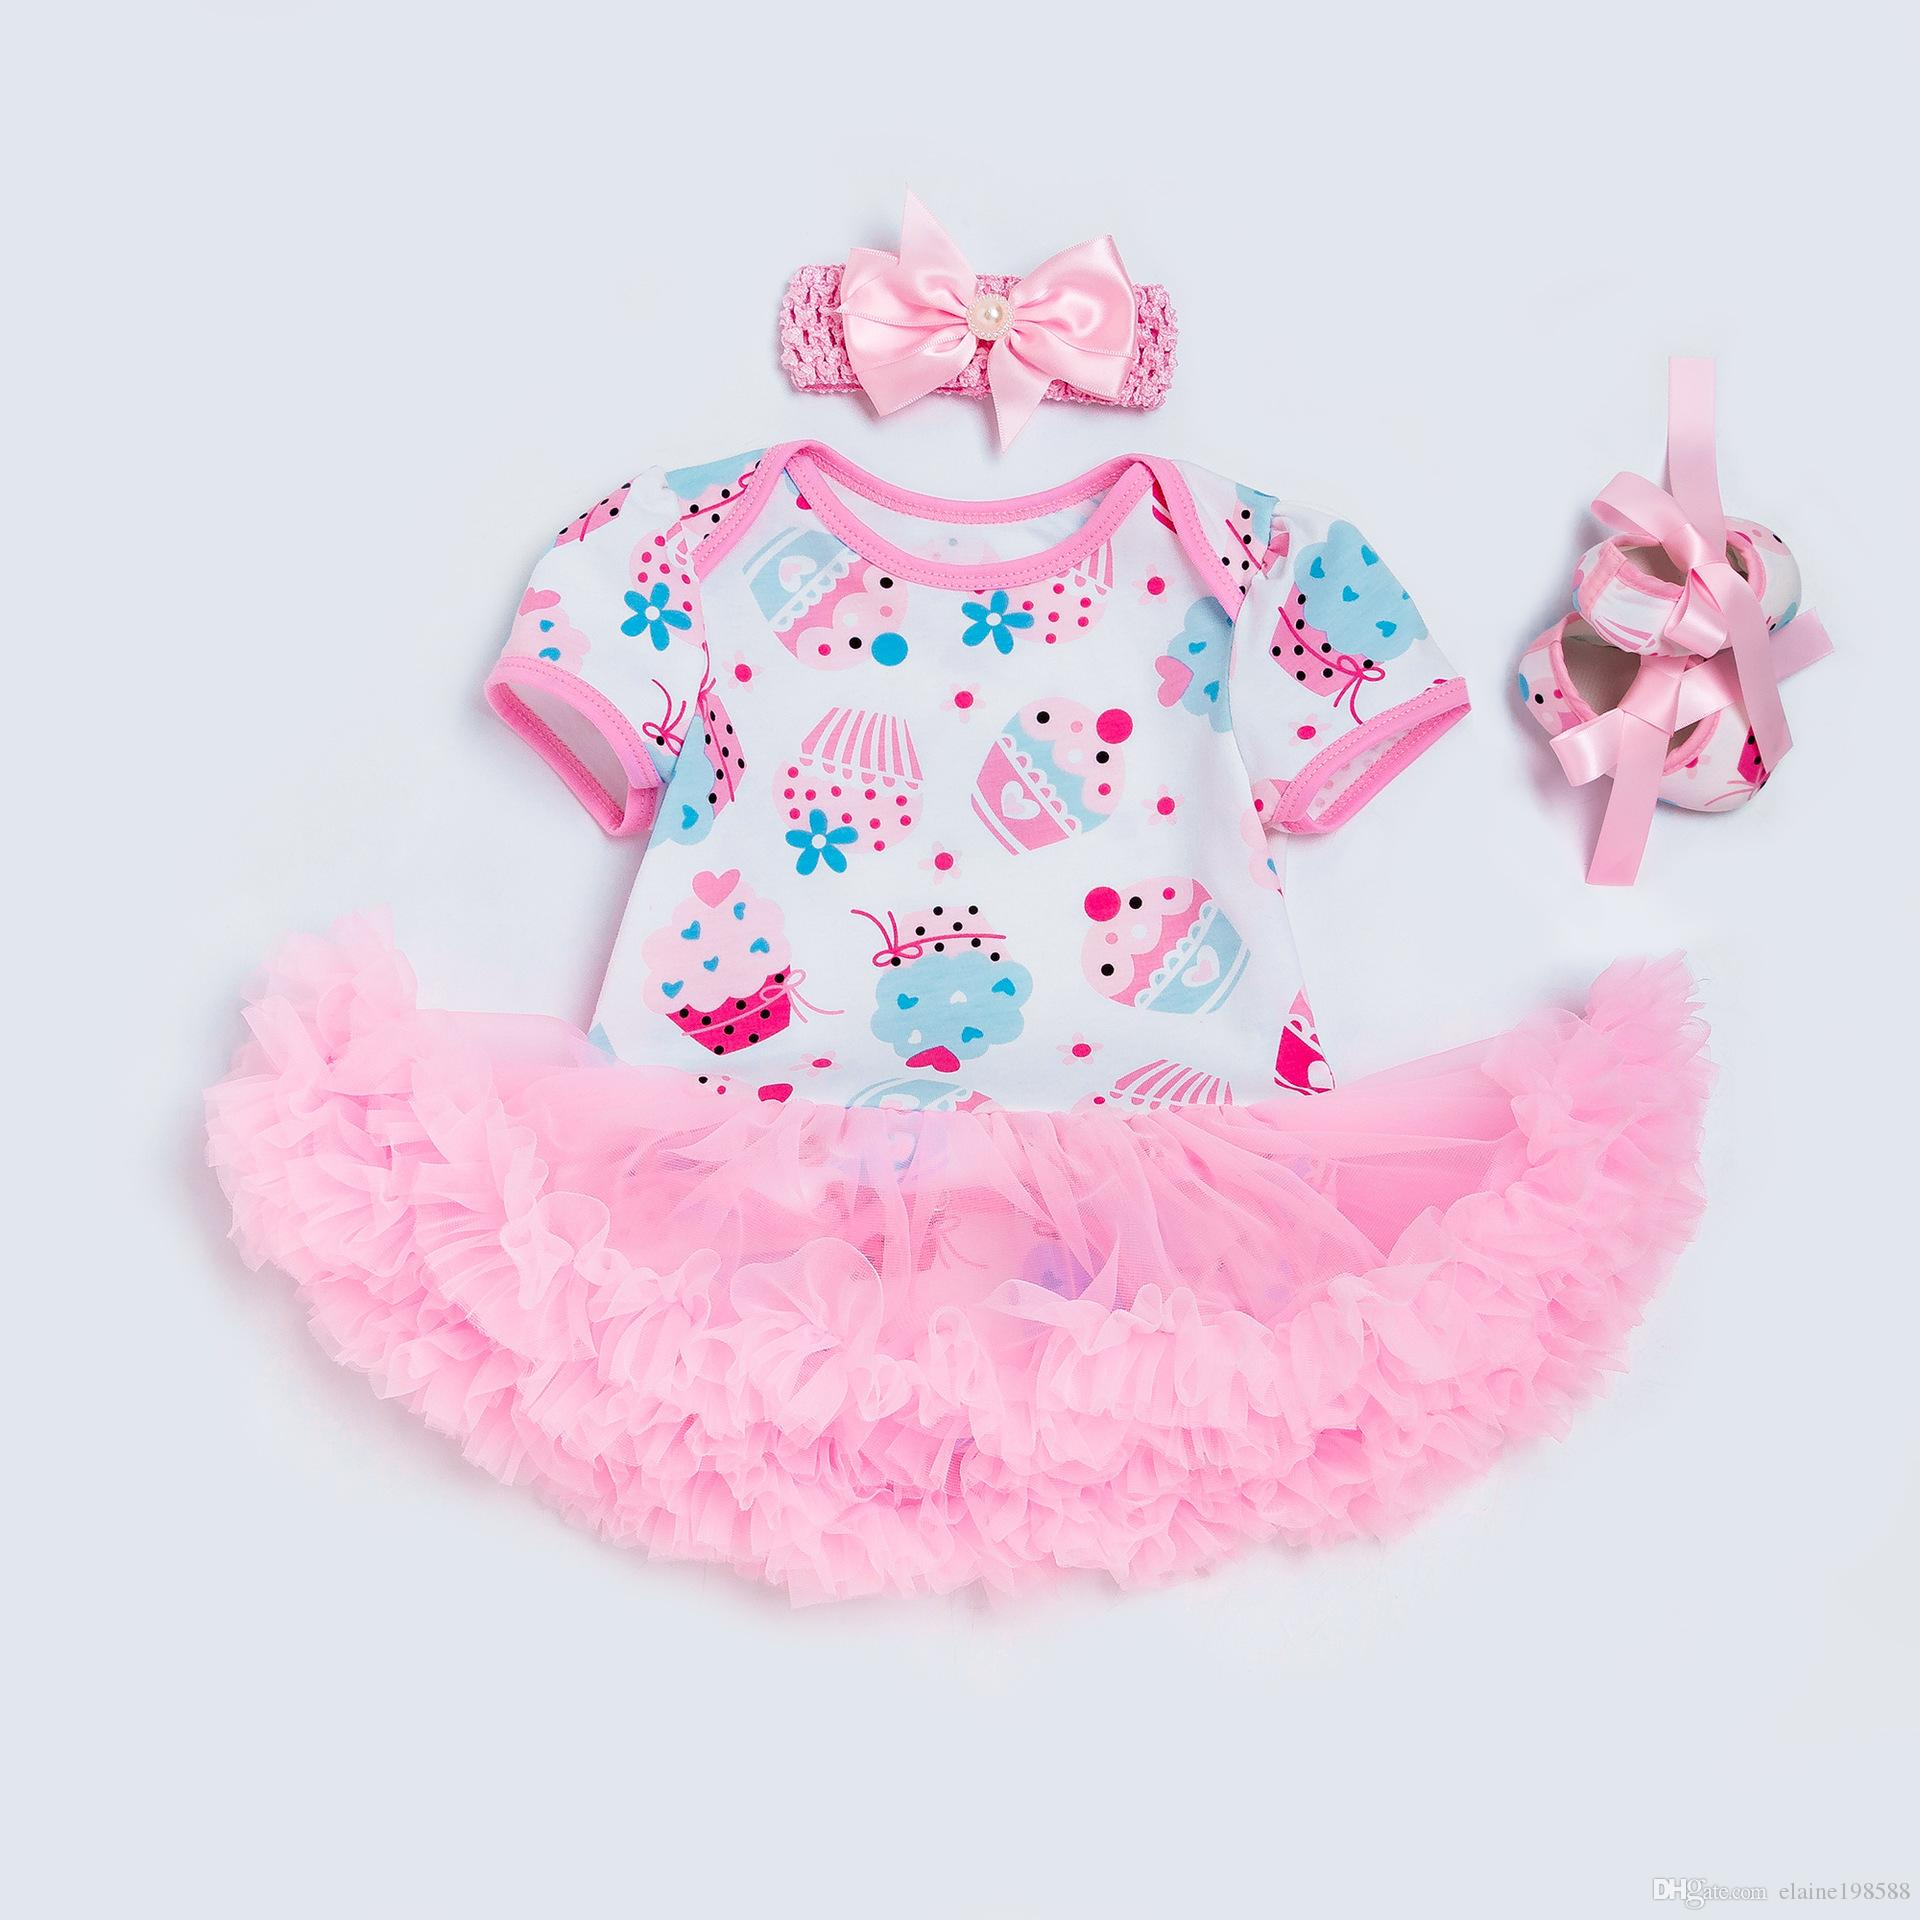 a81f82cf278 2019 Fashion Newborn Clothing Sets Short Sleeve Baby Girl Dresses Ice Cream  Rompers Tutu Dress+Shoes+Headband From Elaine198588